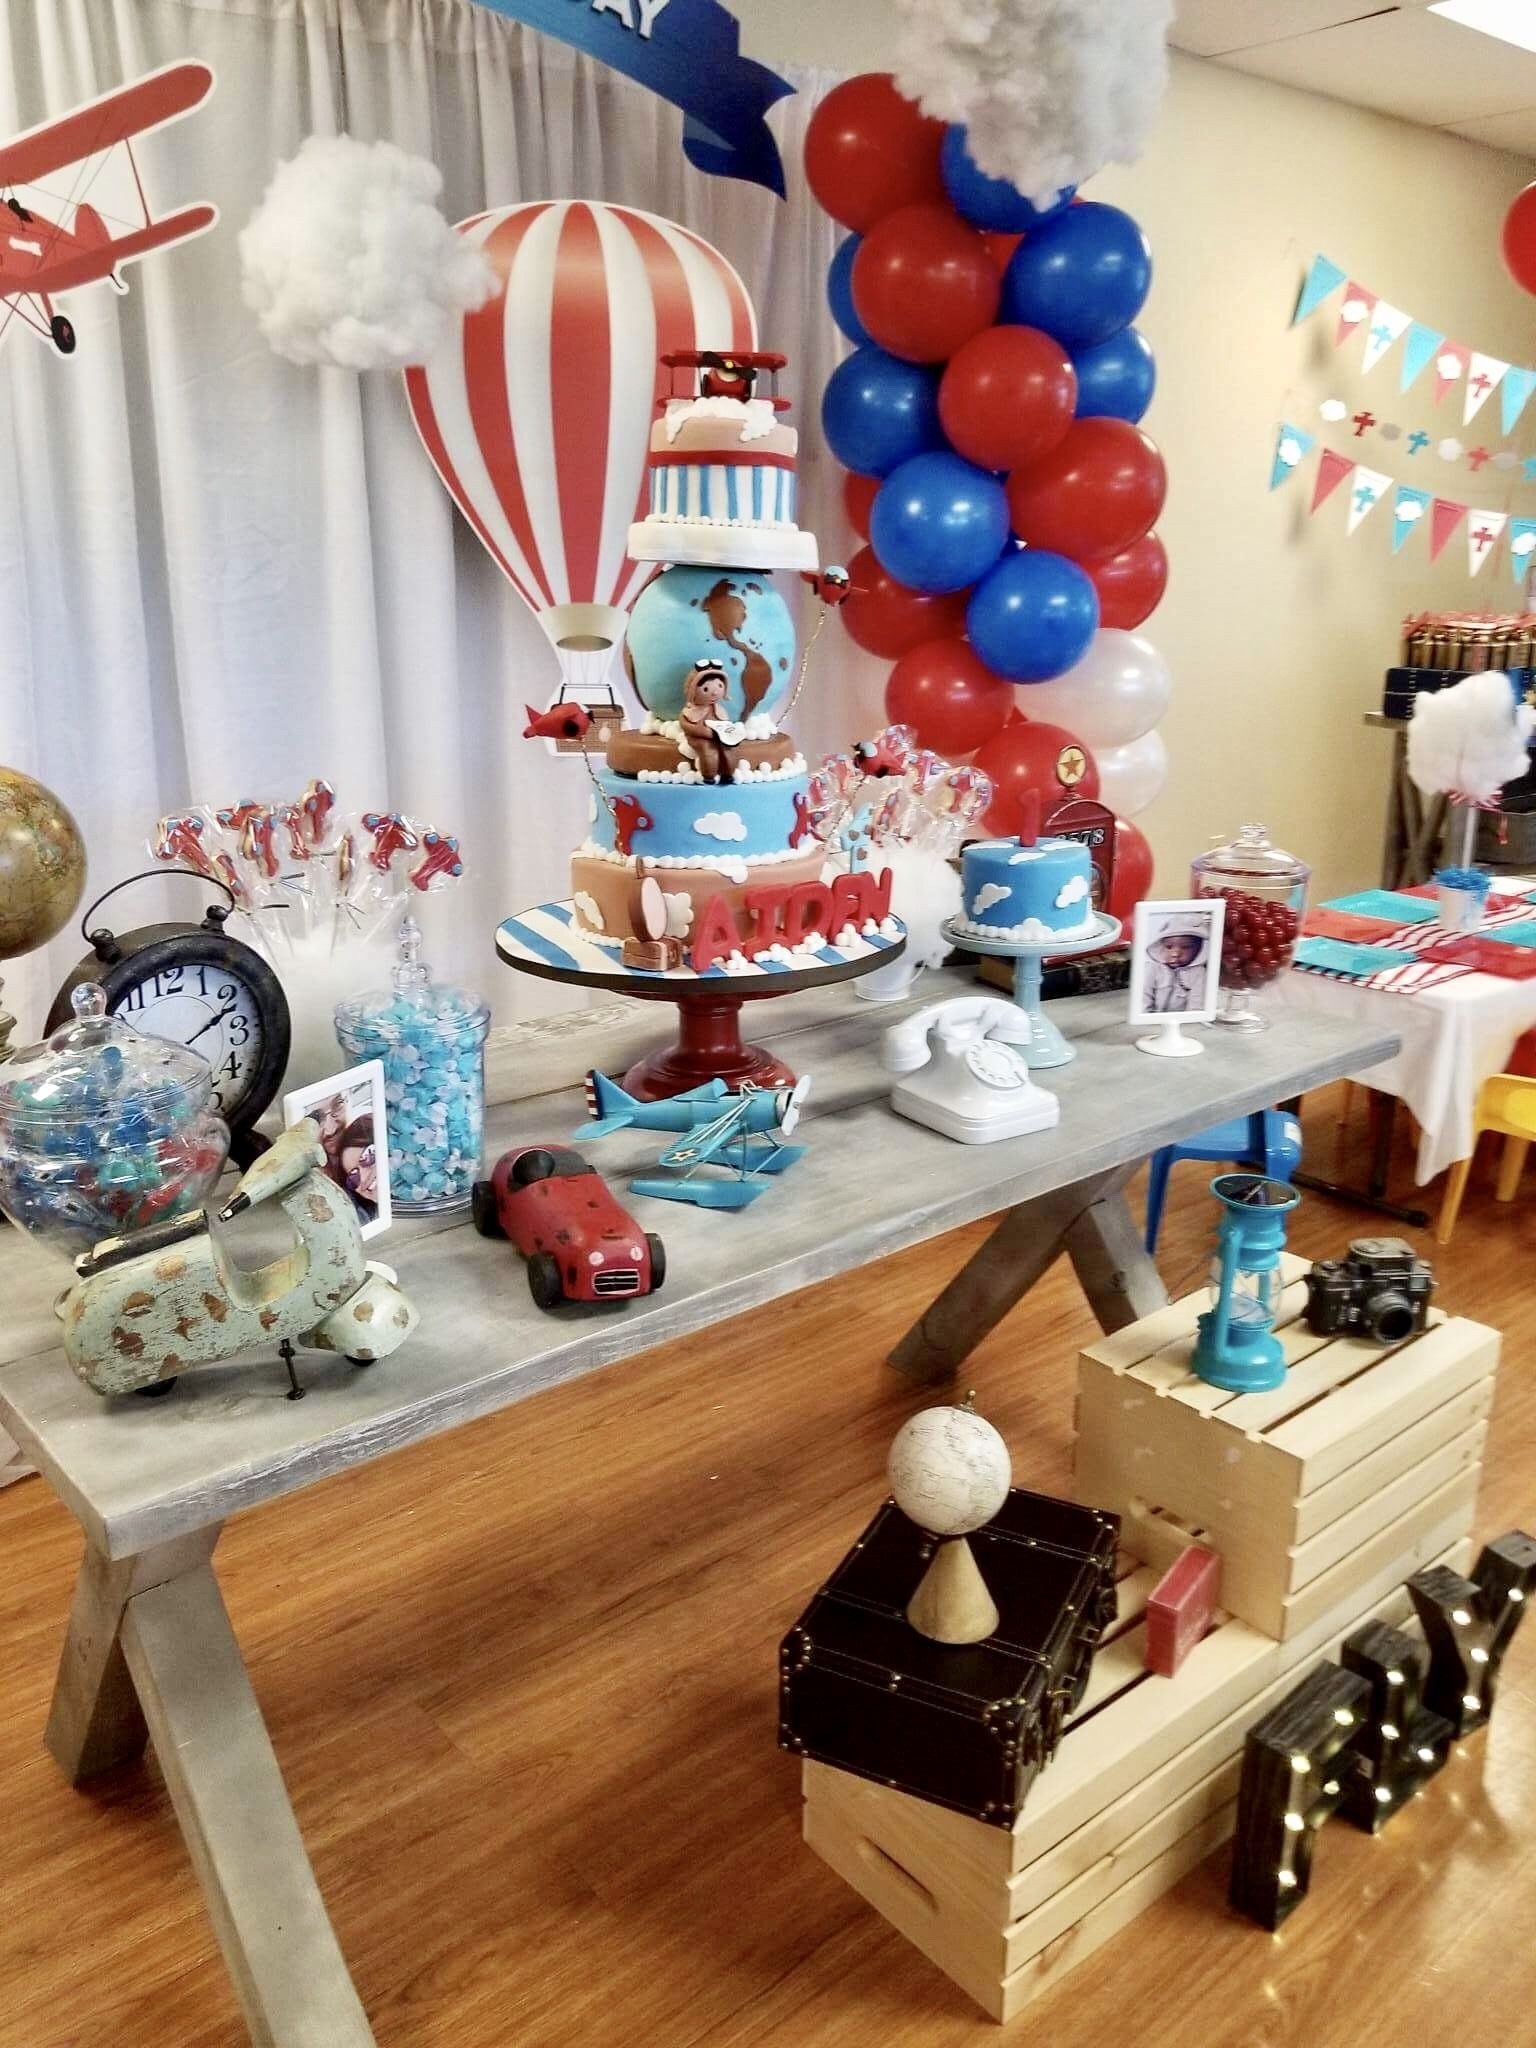 Table Decoration For Vintage Airplane Theme Ideas Boy Birthday 1st Birthday Decorations Airplane Birthday Theme Birthday Theme Decoration